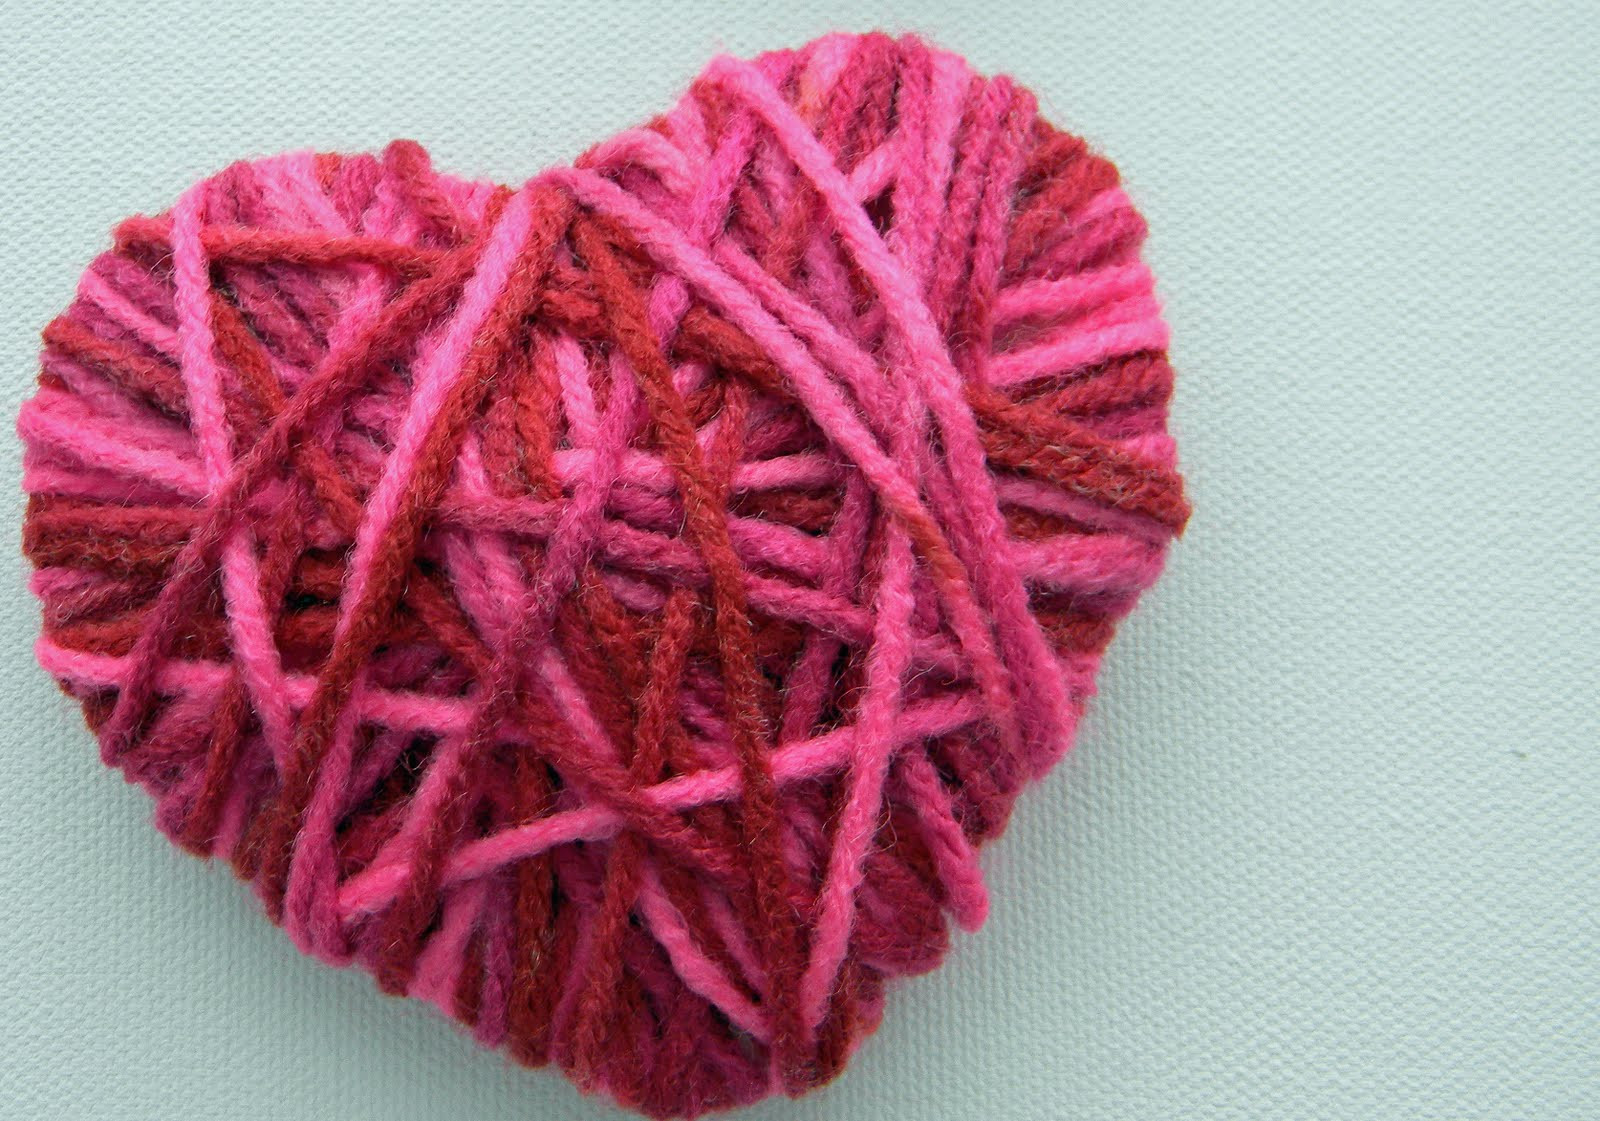 Preschool Crafts for Kids Valentine s Day Yarn Heart Craft